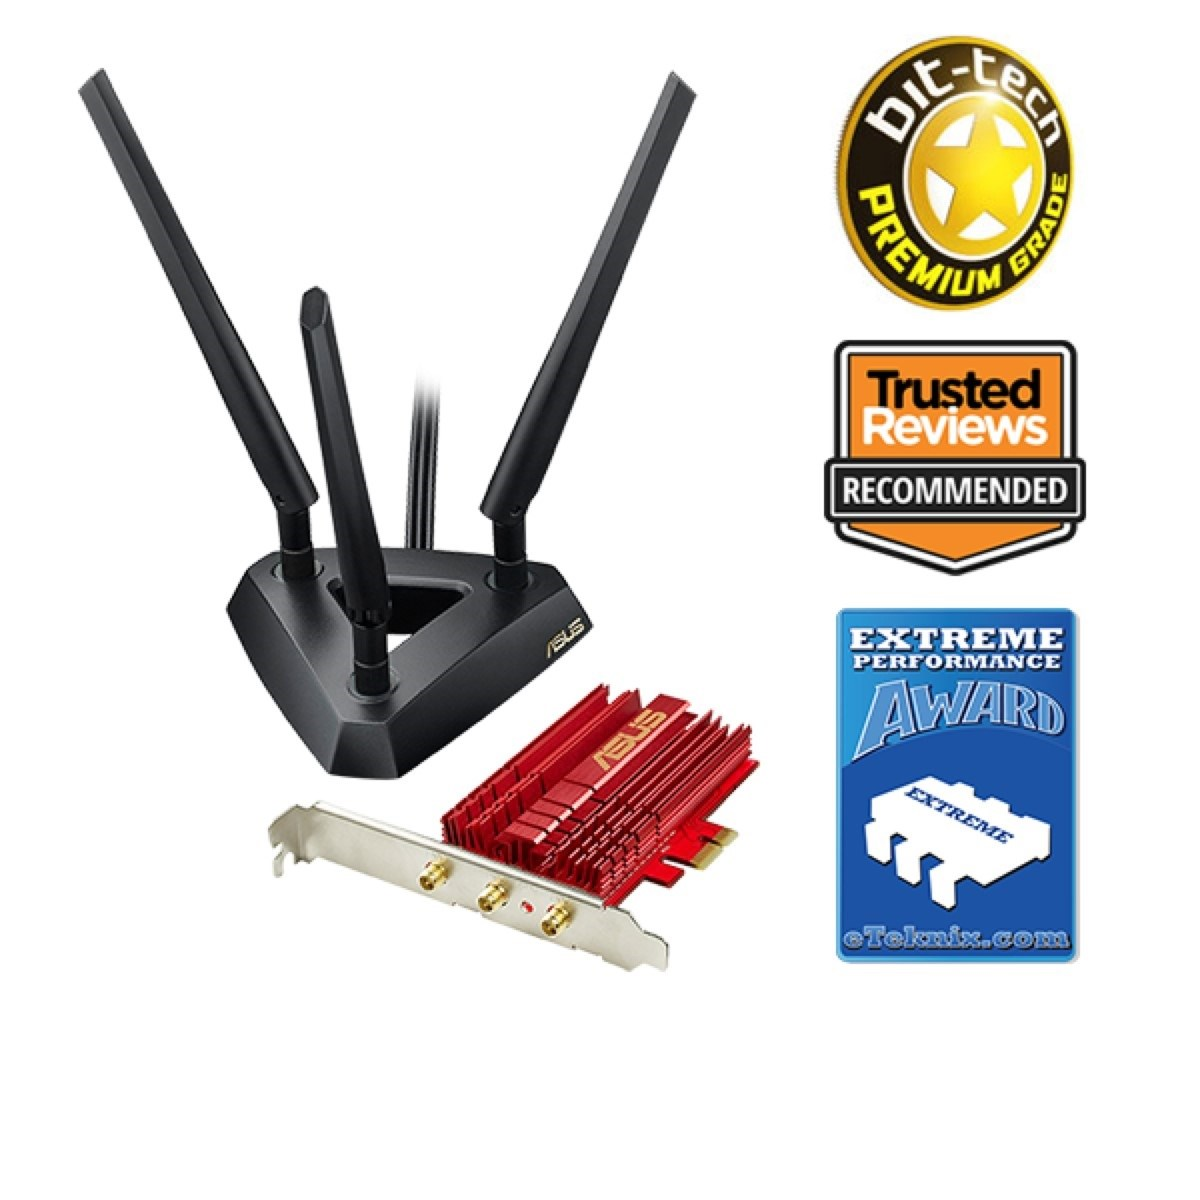 Asus pce-ac68 1900mbps pci express wifi adapter 90ig00r0-bm0g00.